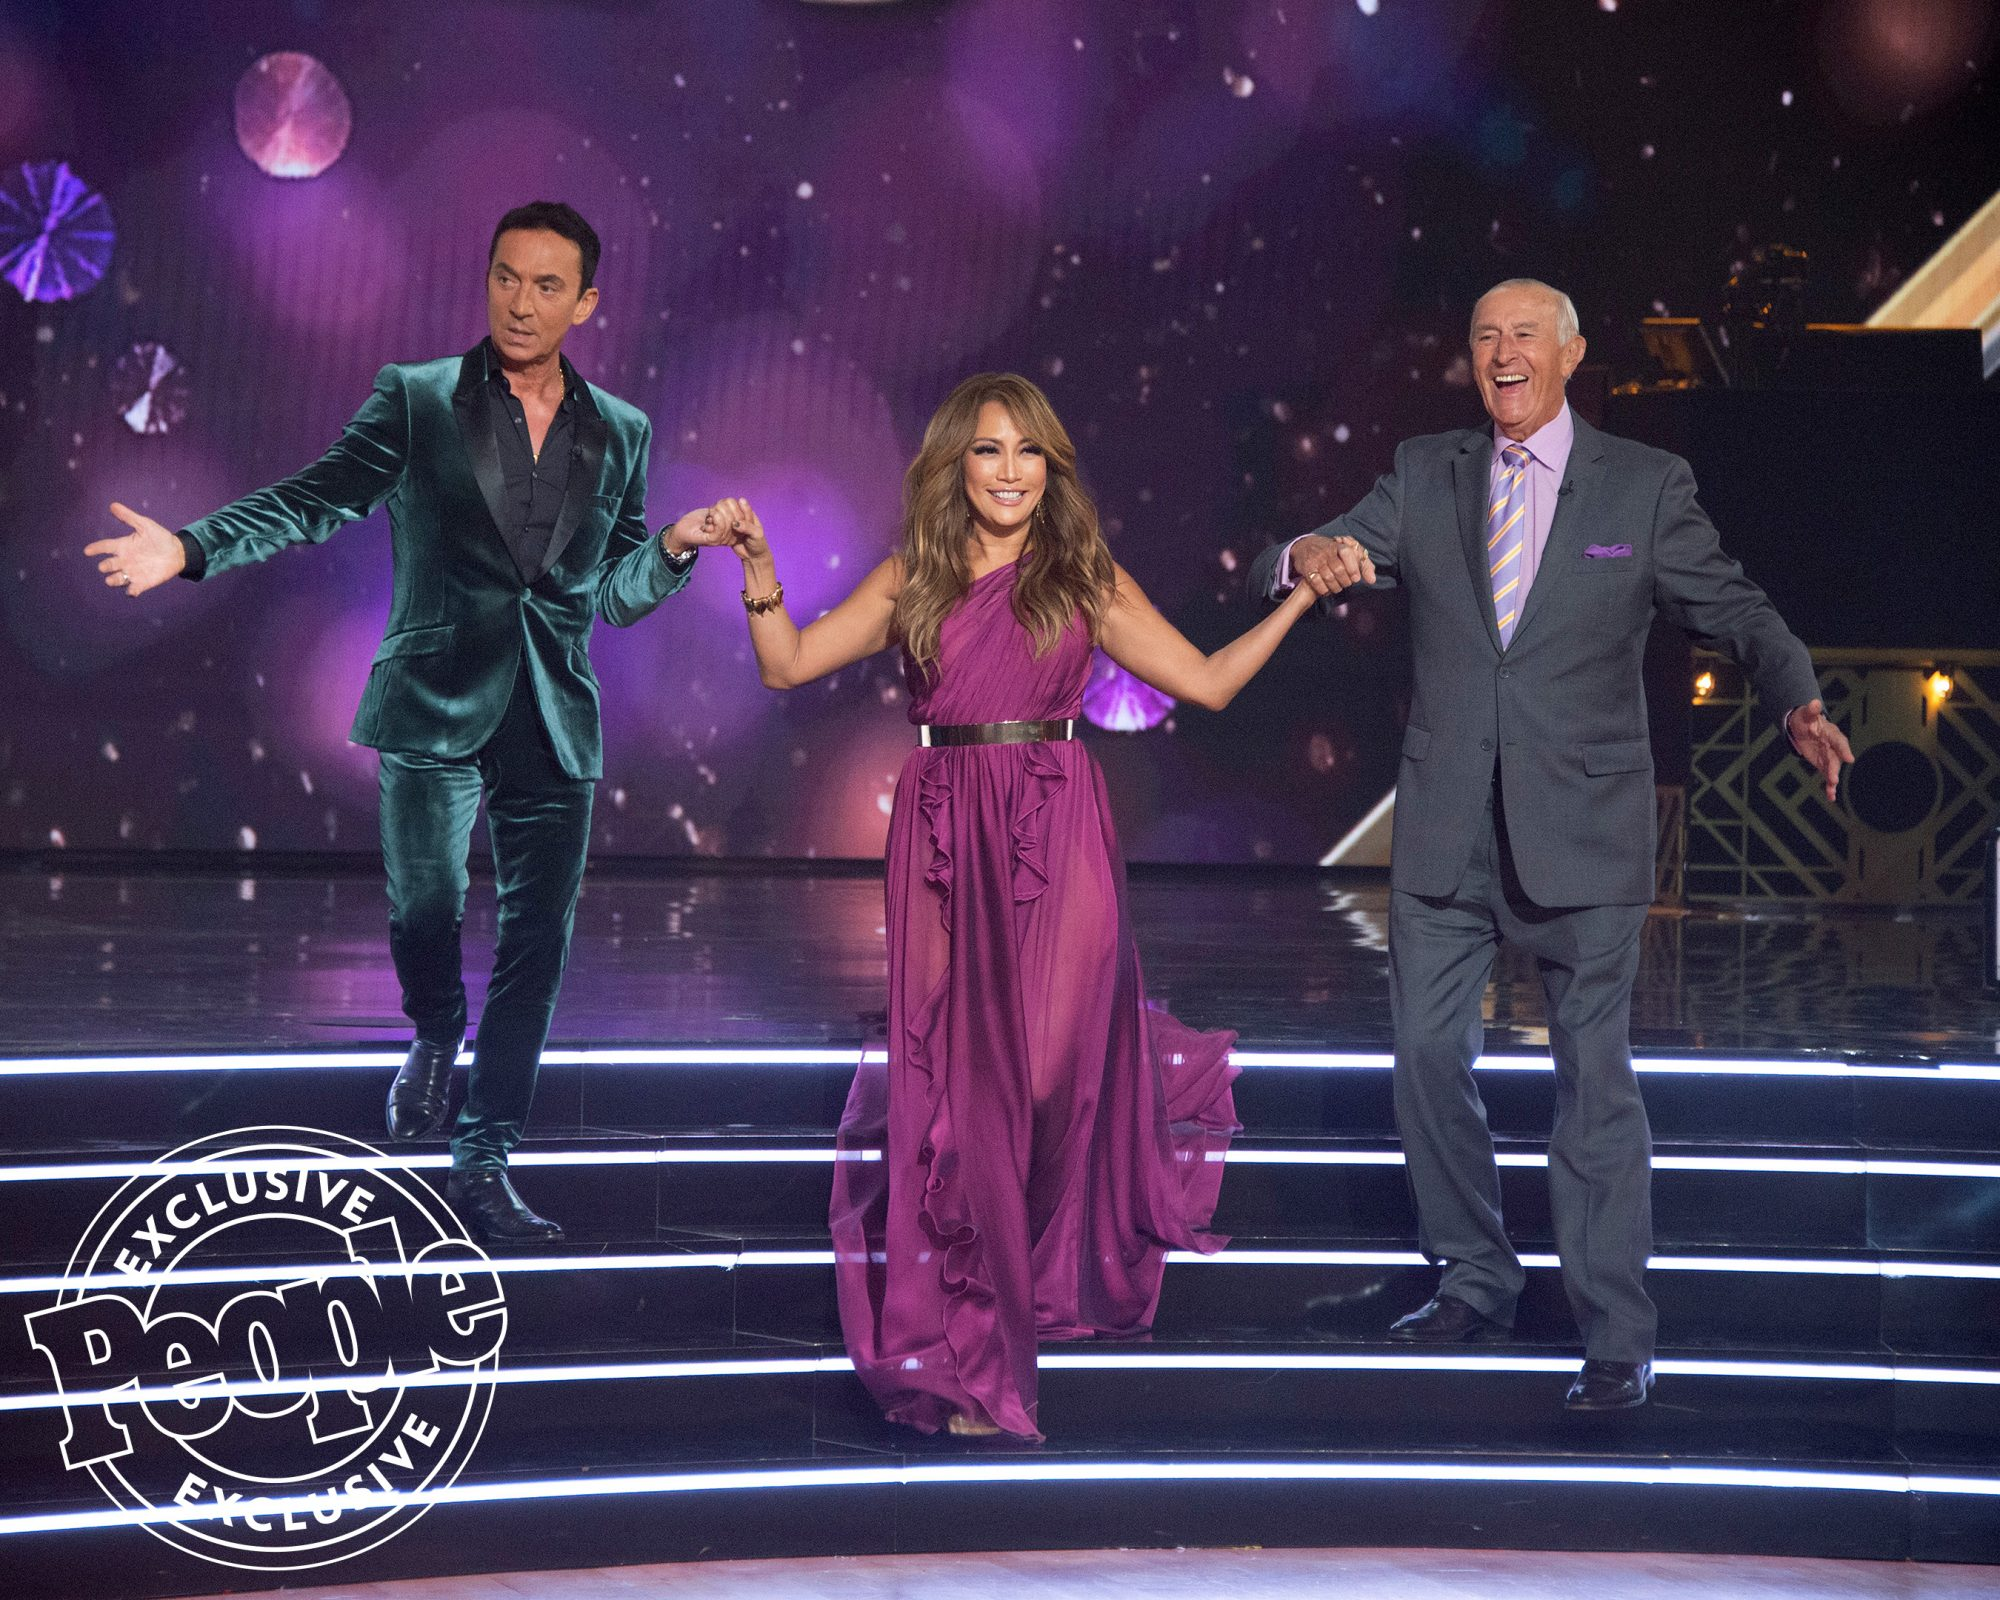 DANCING WITH THE STARS - Carrie Ann Inaba